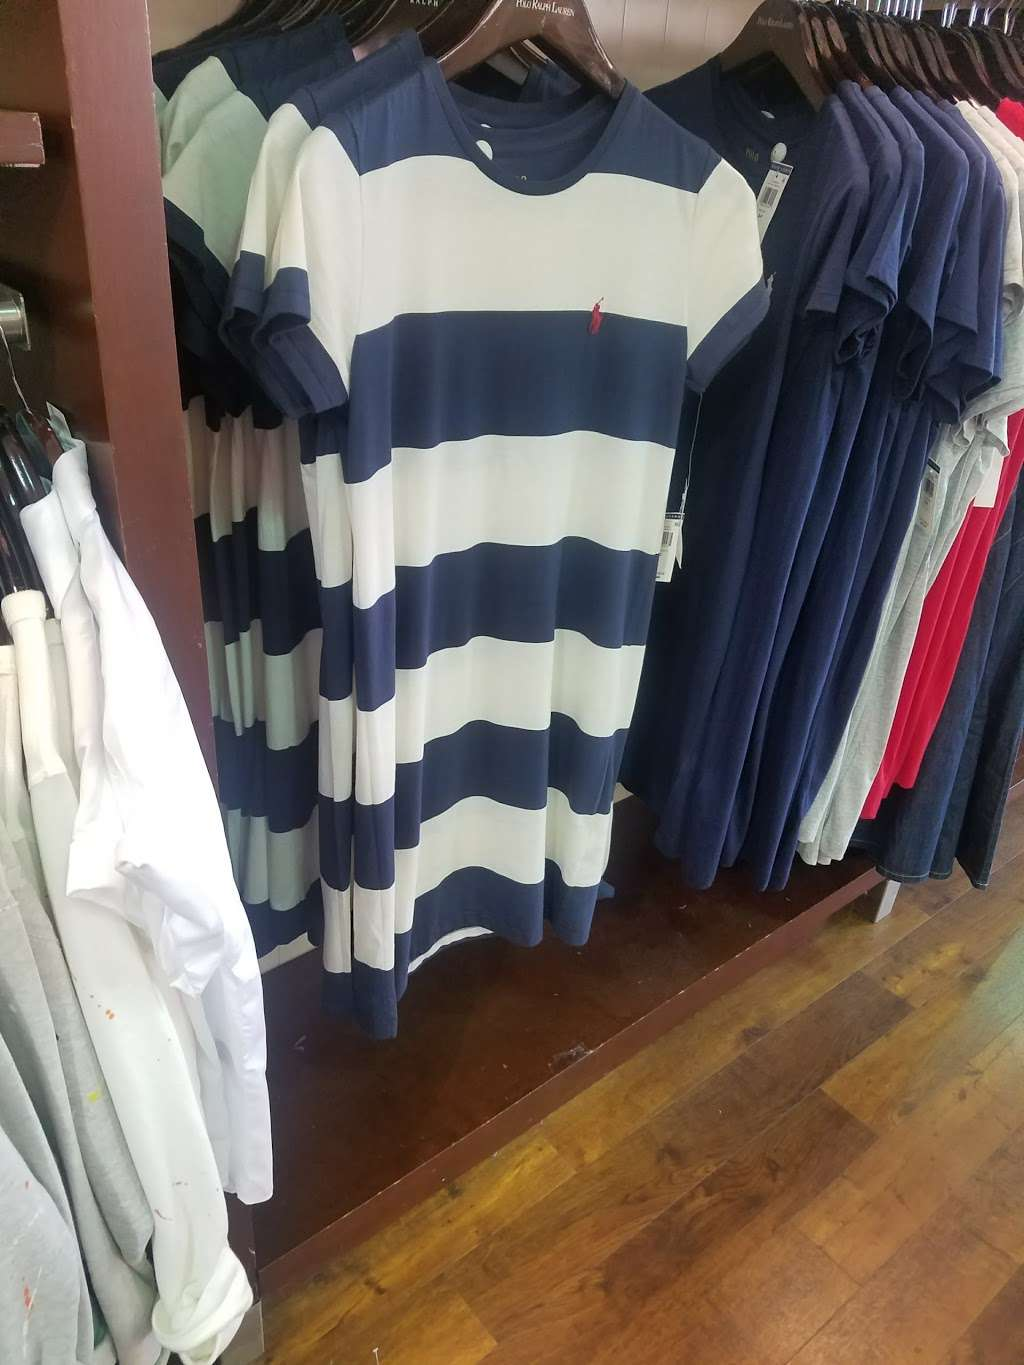 Polo Ralph Lauren Factory Store - clothing store    Photo 8 of 10   Address: 203 Outlet Center Dr, Queenstown, MD 21658, USA   Phone: (410) 827-5039